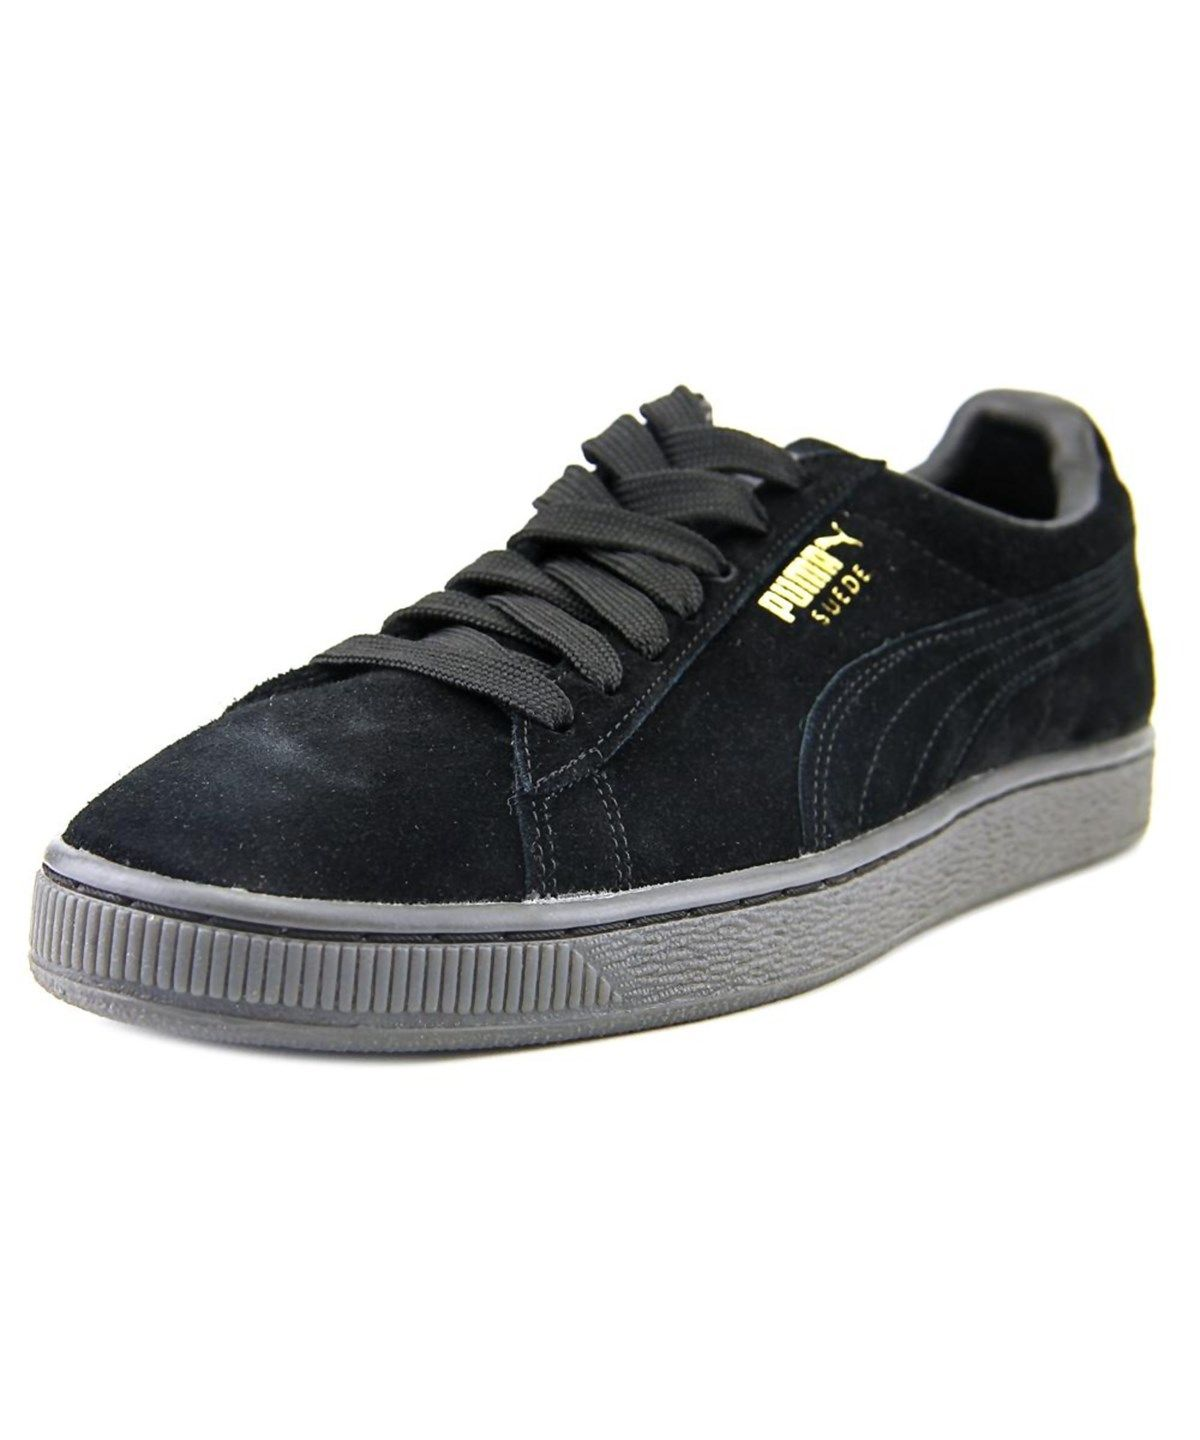 puma puma suede classic mono iced men round toe suede. Black Bedroom Furniture Sets. Home Design Ideas